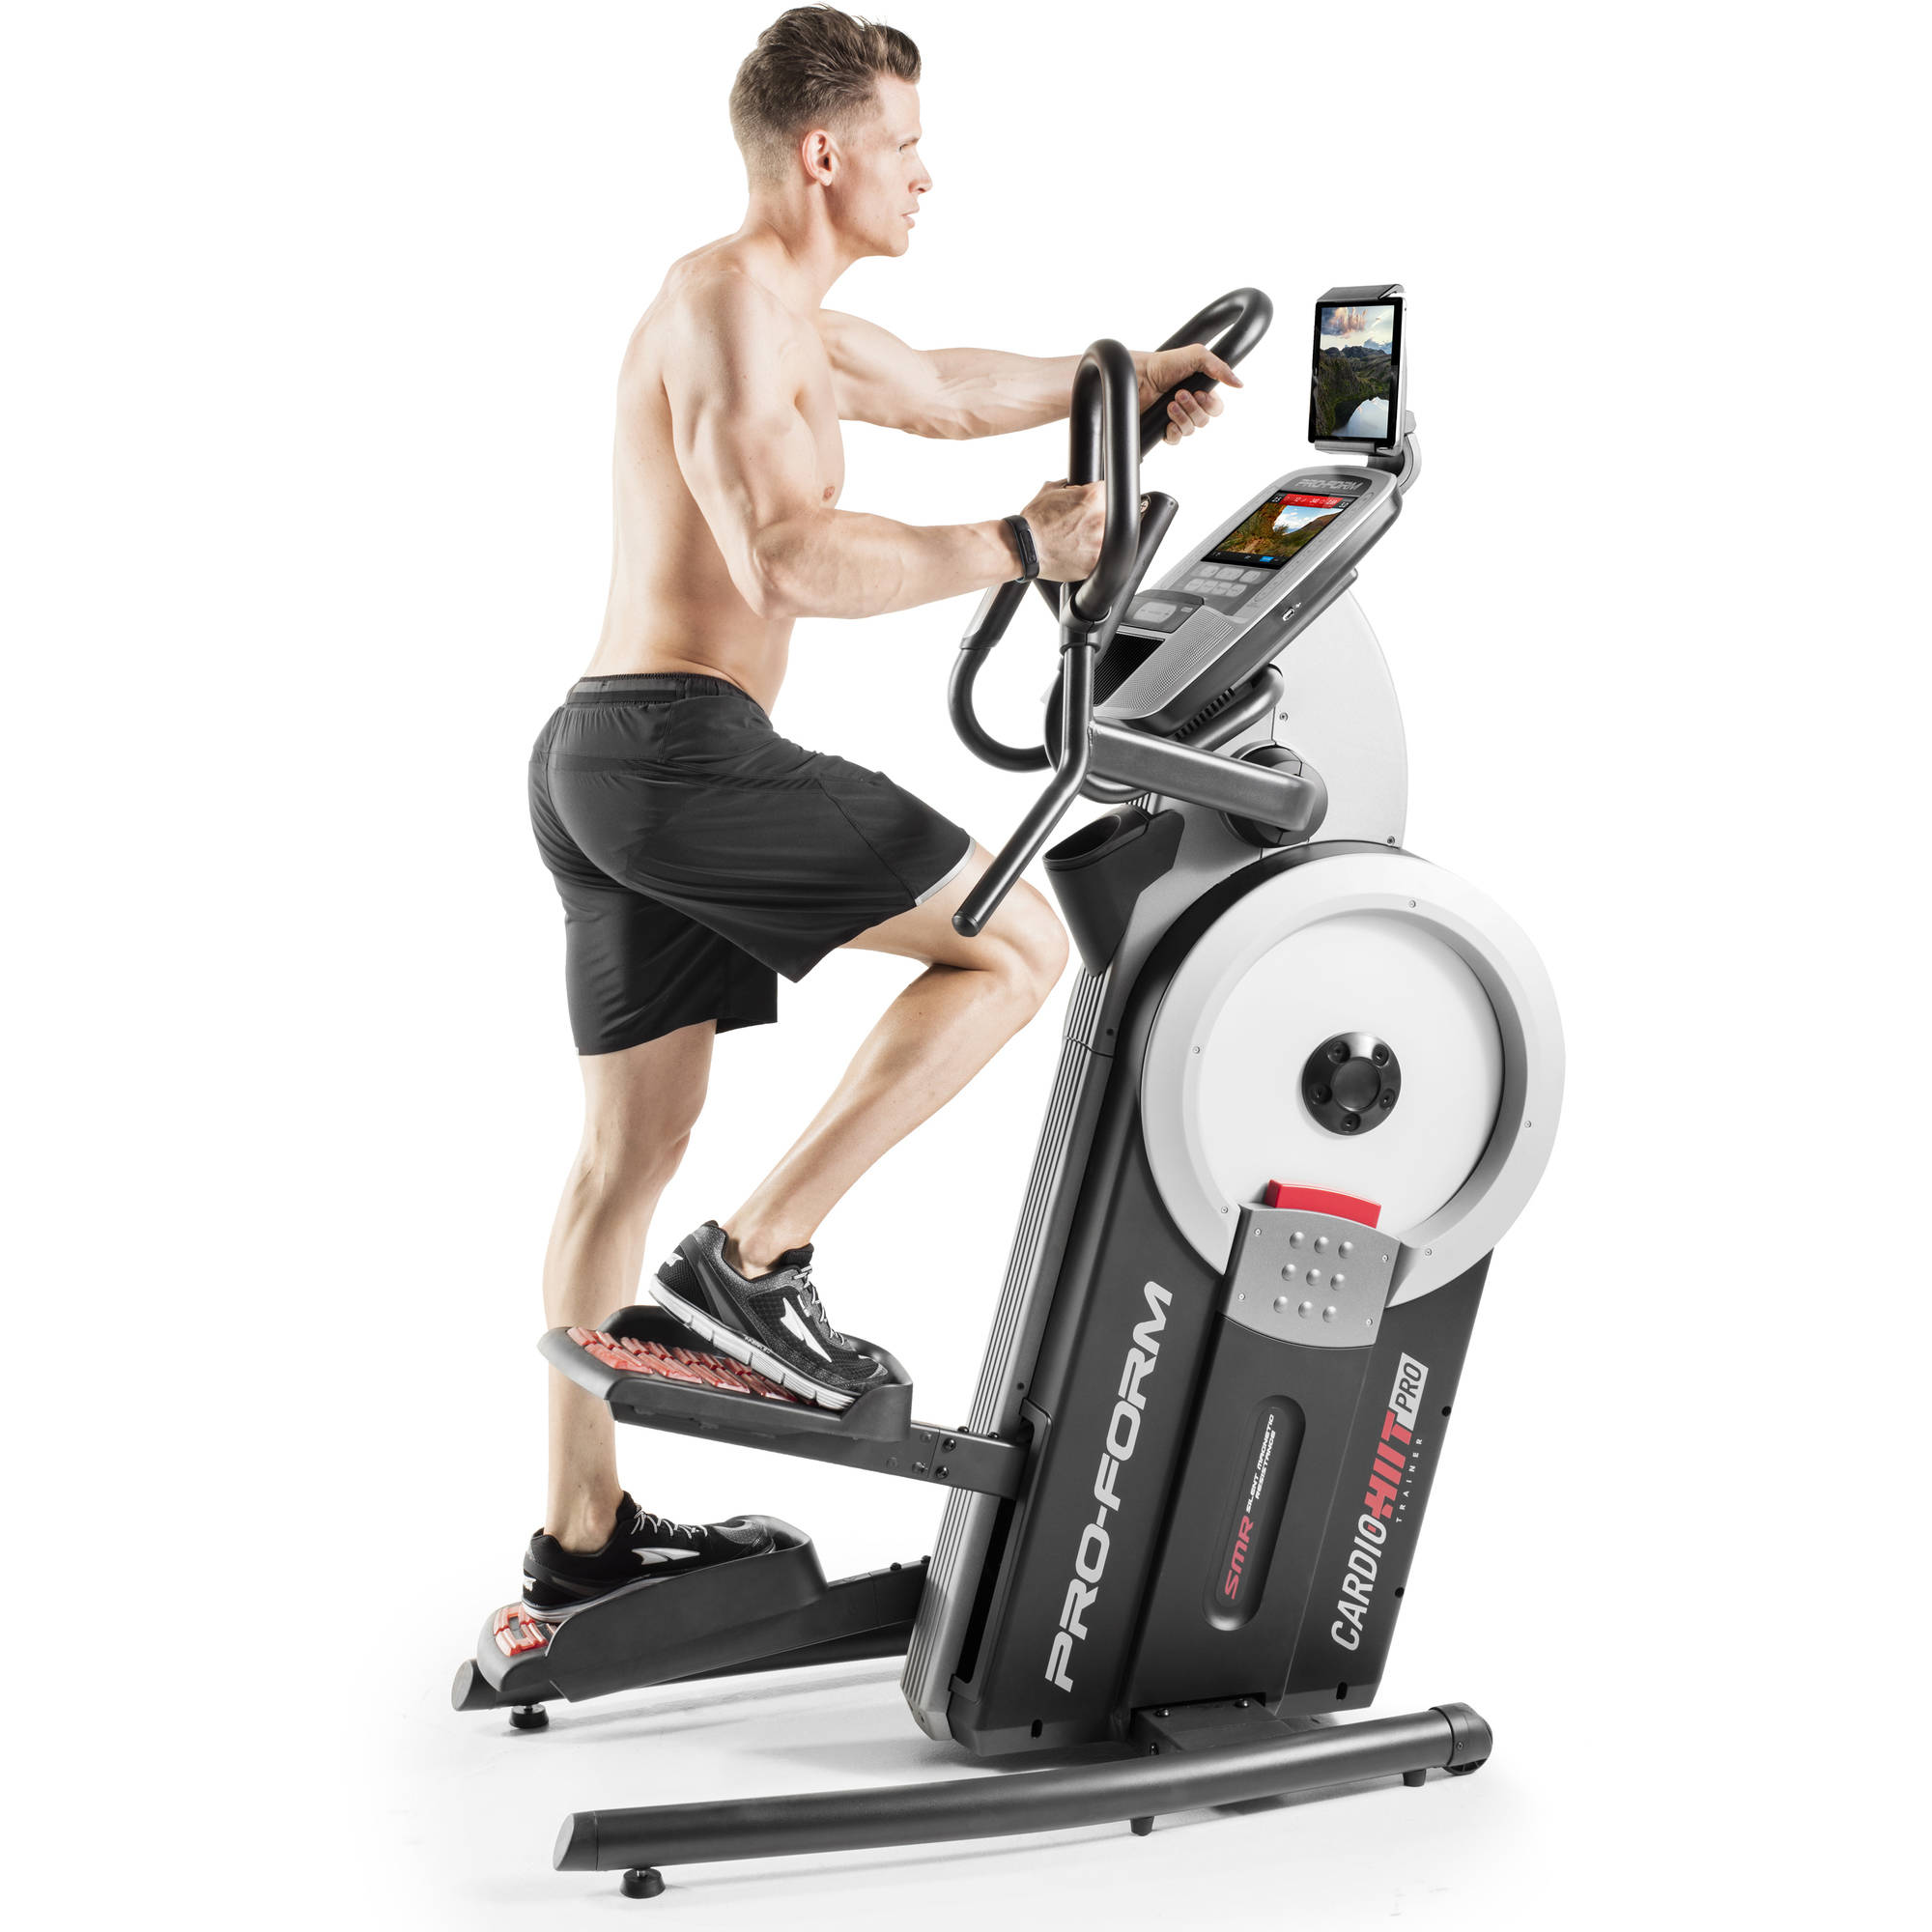 ProForm HIIT Trainer Pro, Hybrid Elliptical and Stepper with FREE 1 Year iFit Membership